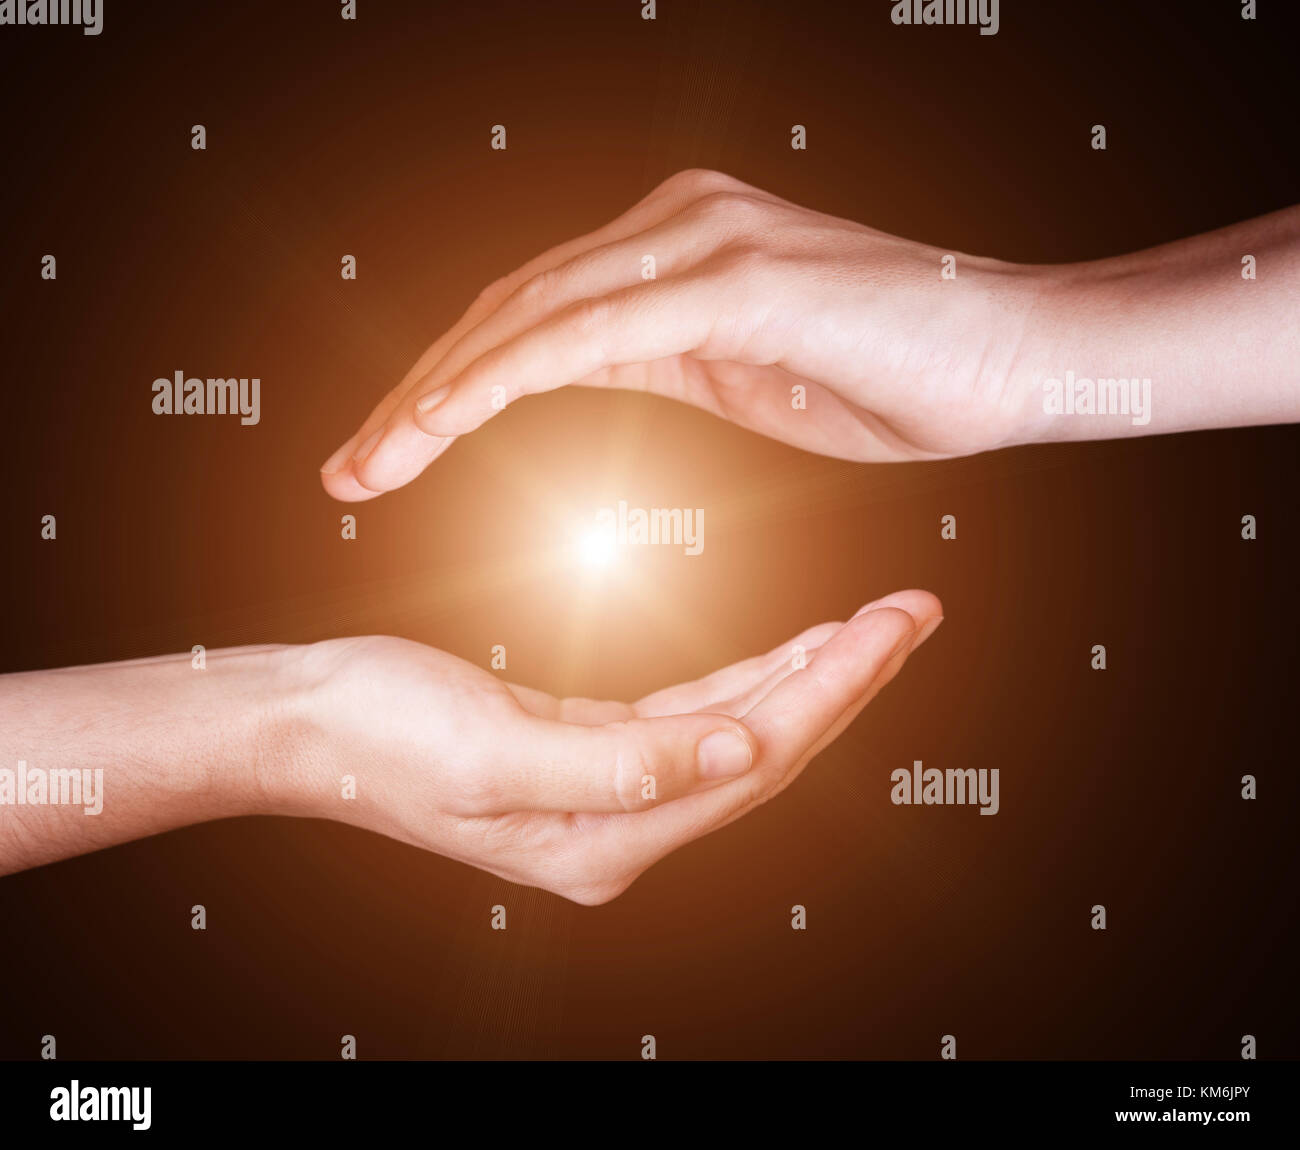 Woman hands protecting and containing bright, glowing, radiant, shining light. Emitting rays or beams expanding - Stock Image